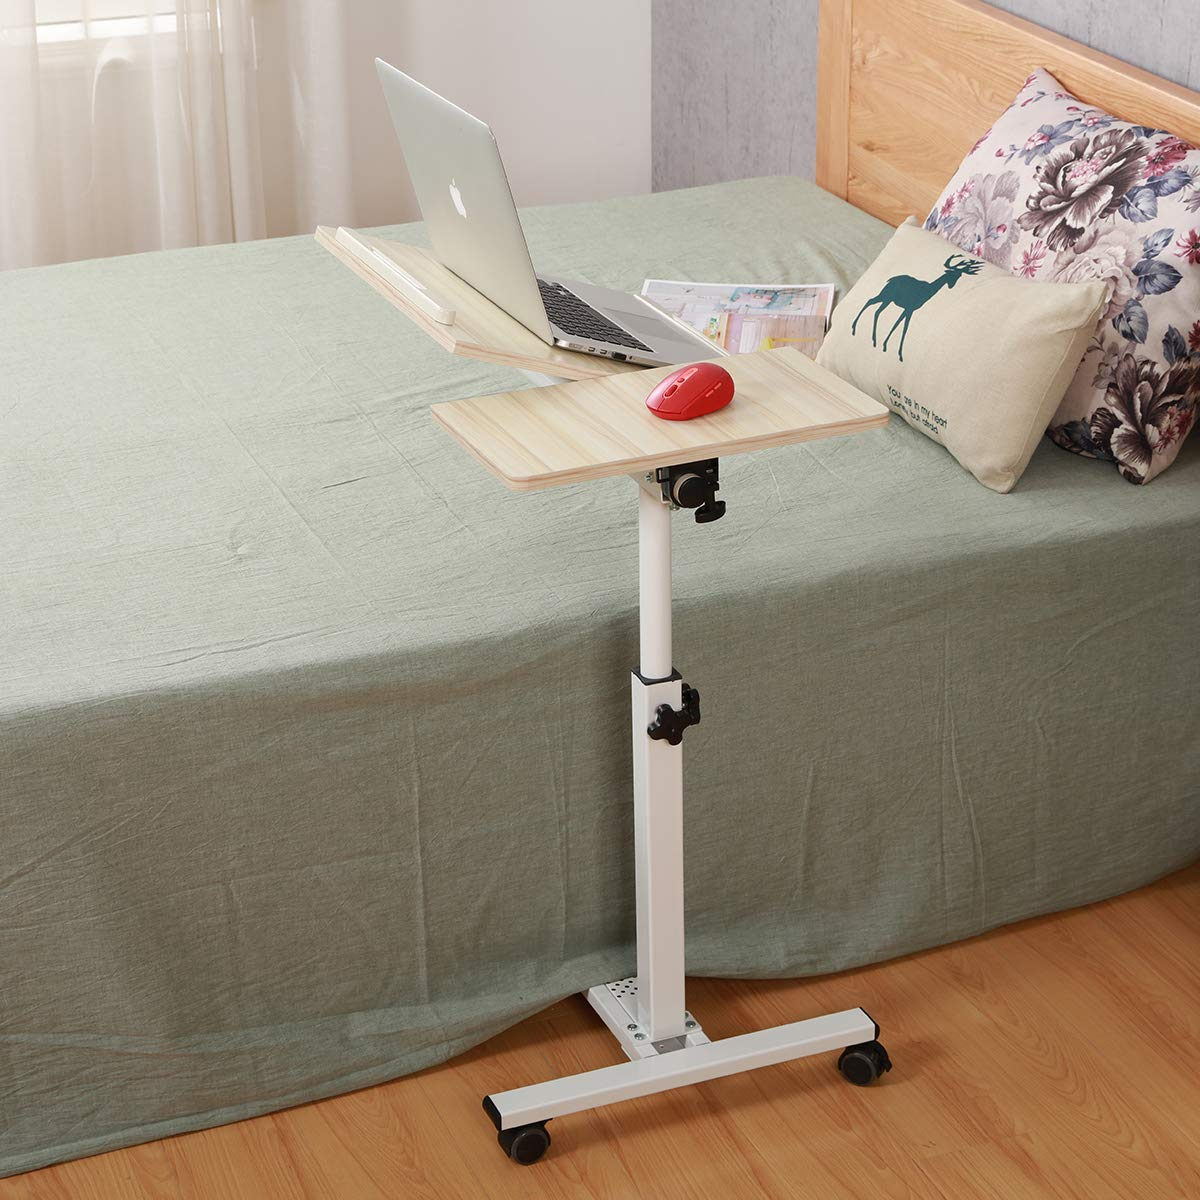 Tilting Overbed Table with Wheels Rolling Laptop Table Overbed Desk Rolling Laptop Stand Over Bed Desk Rolling Laptop Desk with Wheels (WhiteMaple) by TigerDad